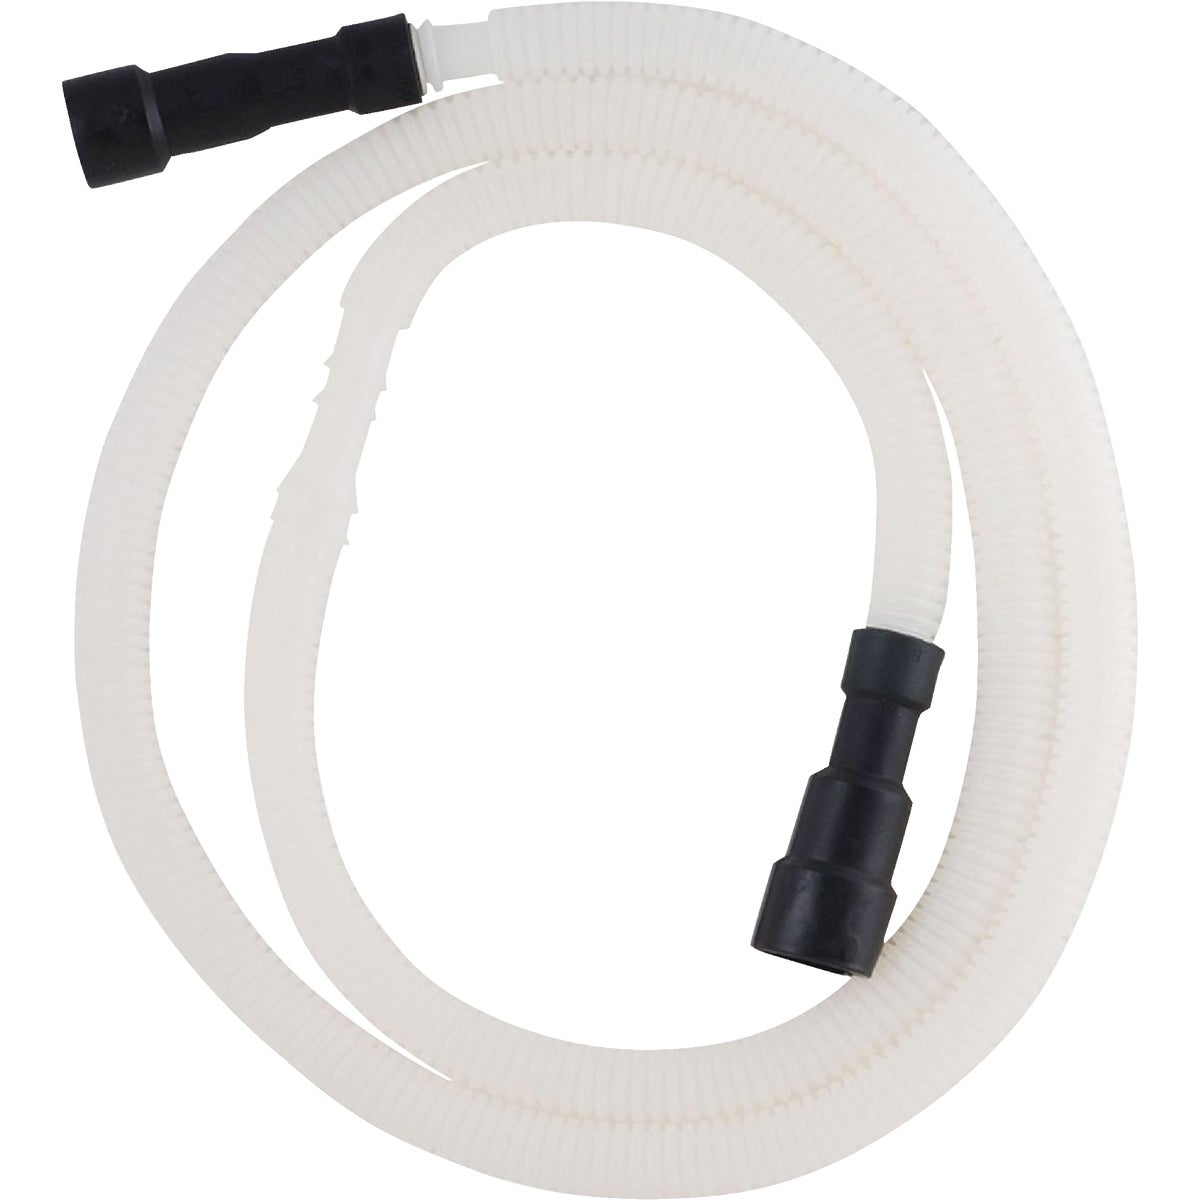 DISHWASHER DISCHARG HOSE